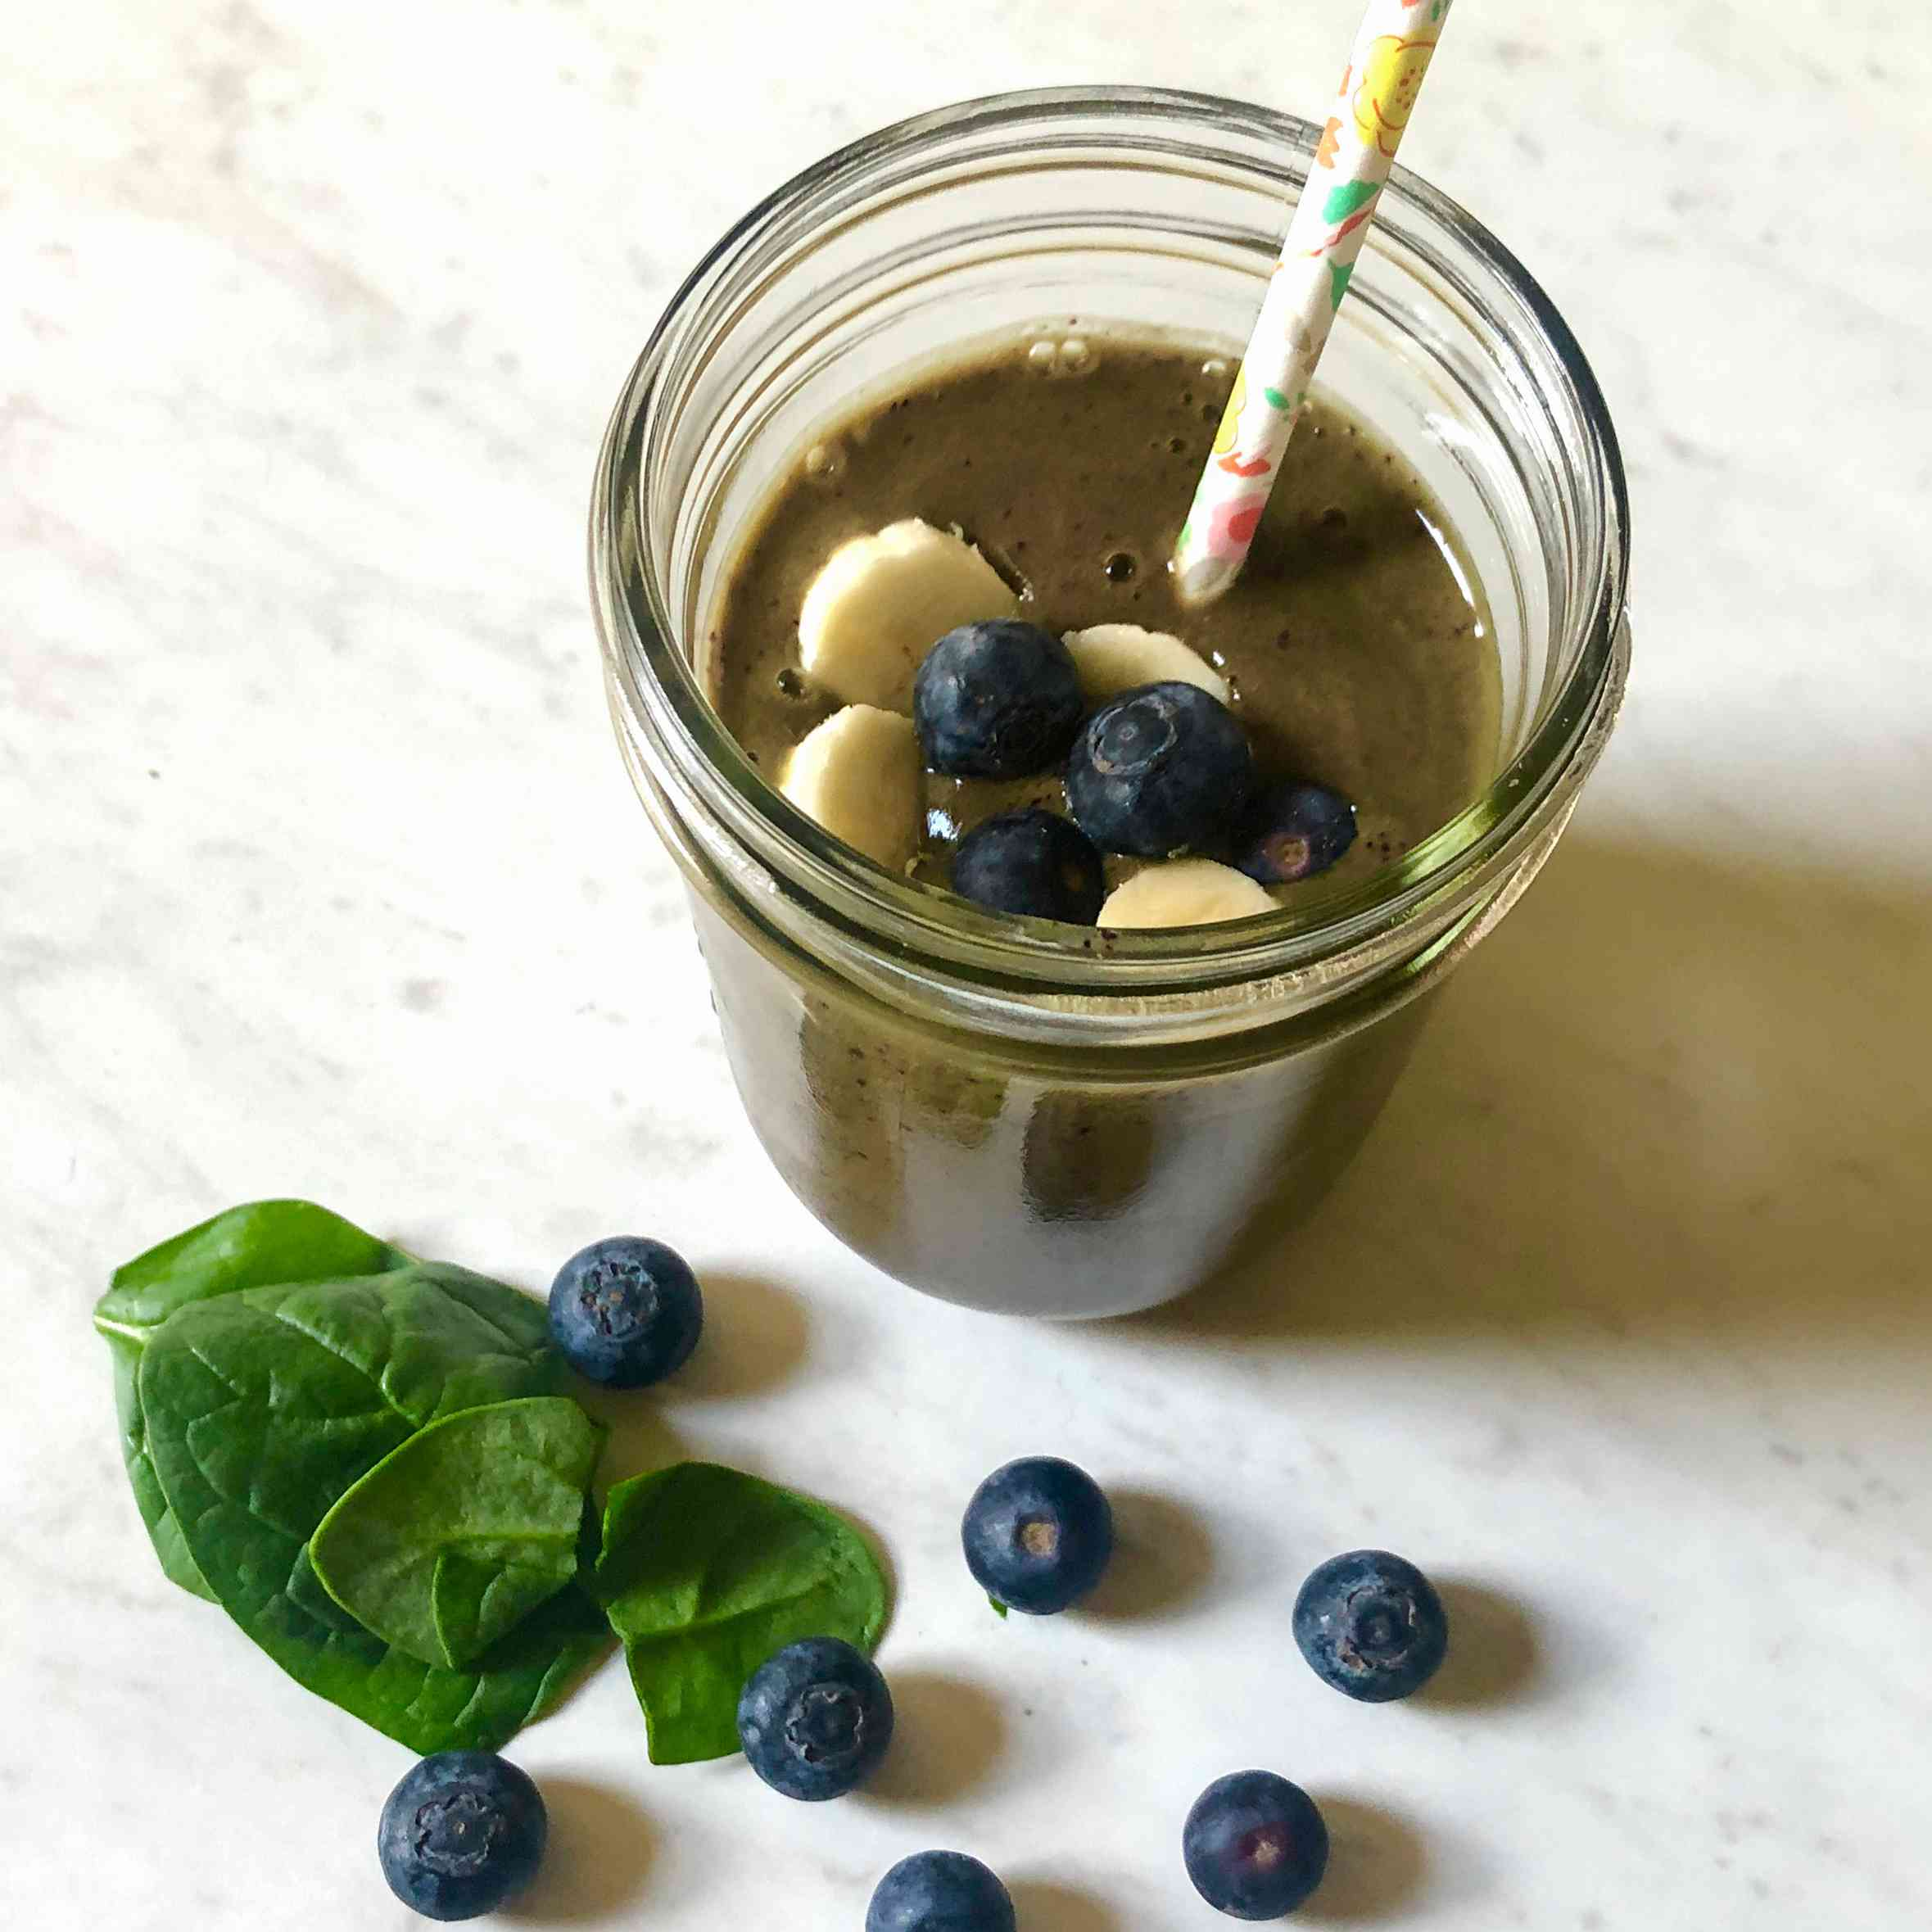 Blueberry and Spinach Superfood Smoothie Tester Image